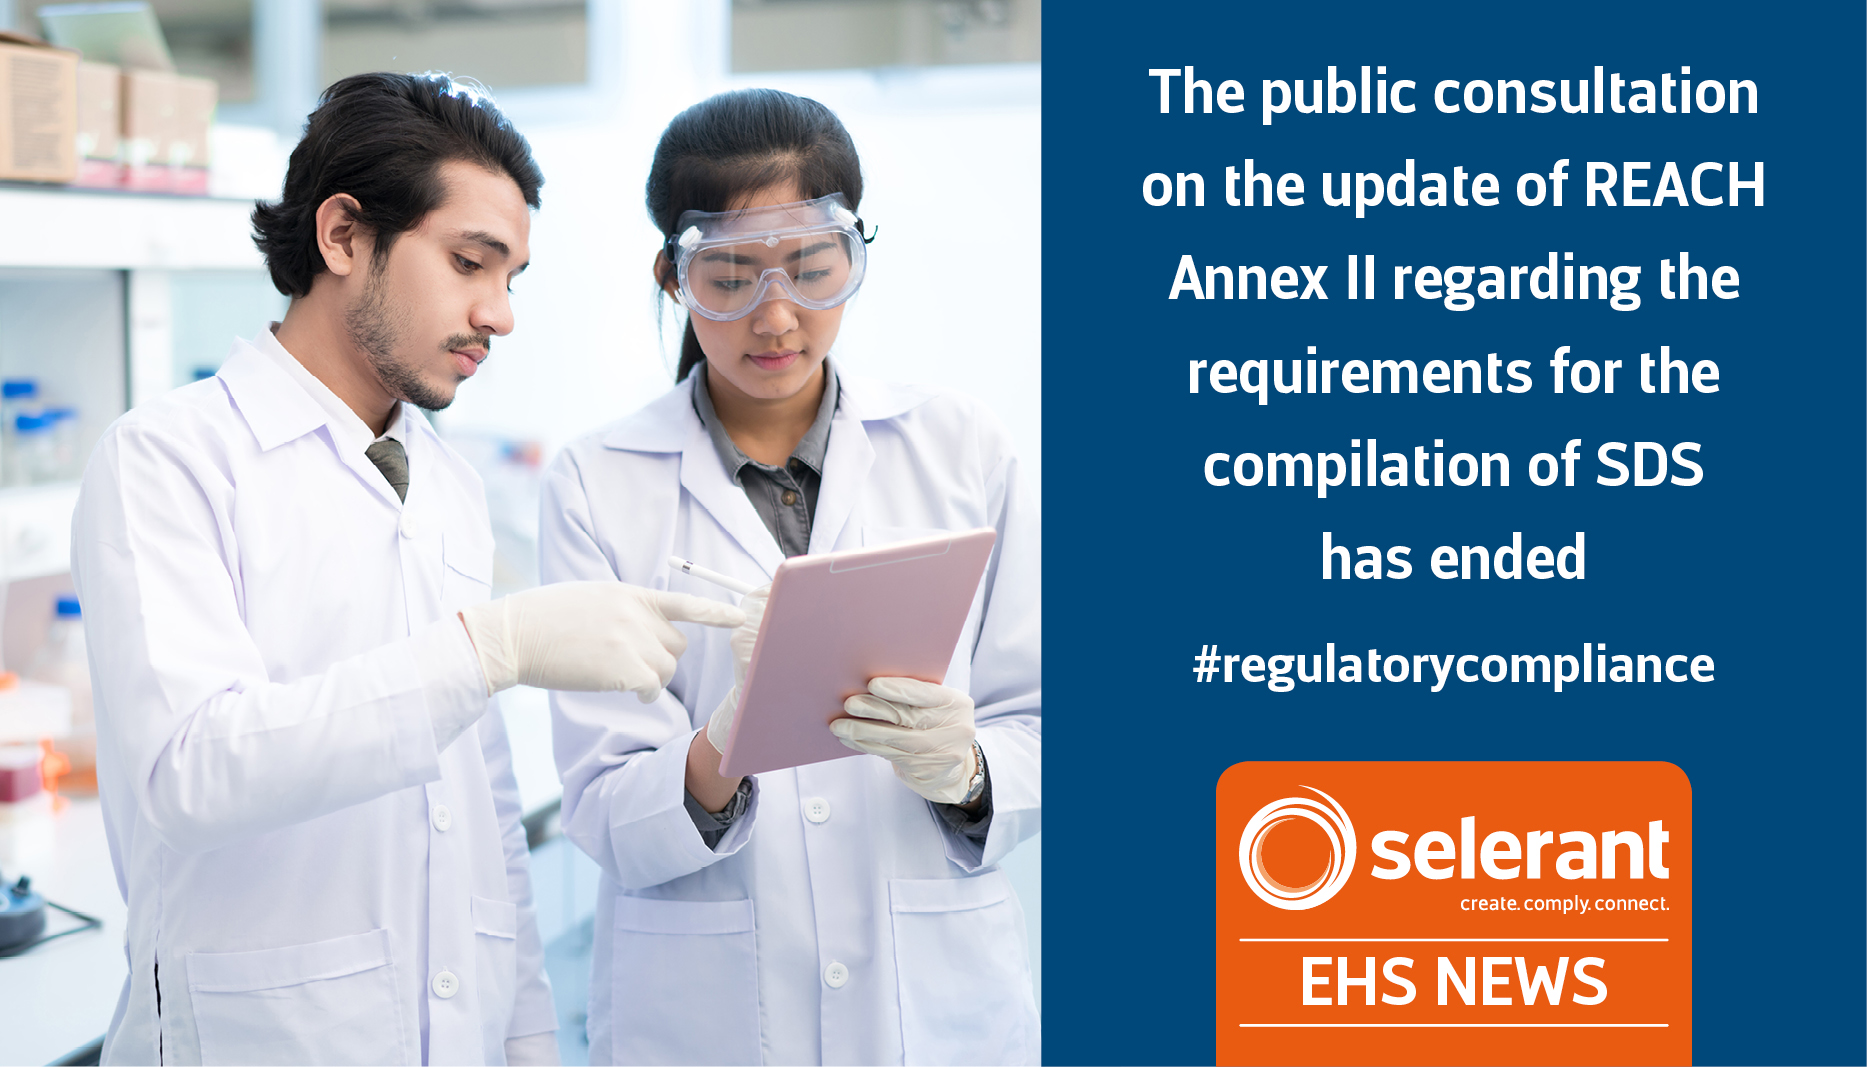 The public consultation on the update of REACH Annex II regarding the requirements for the compilation of SDS has ended